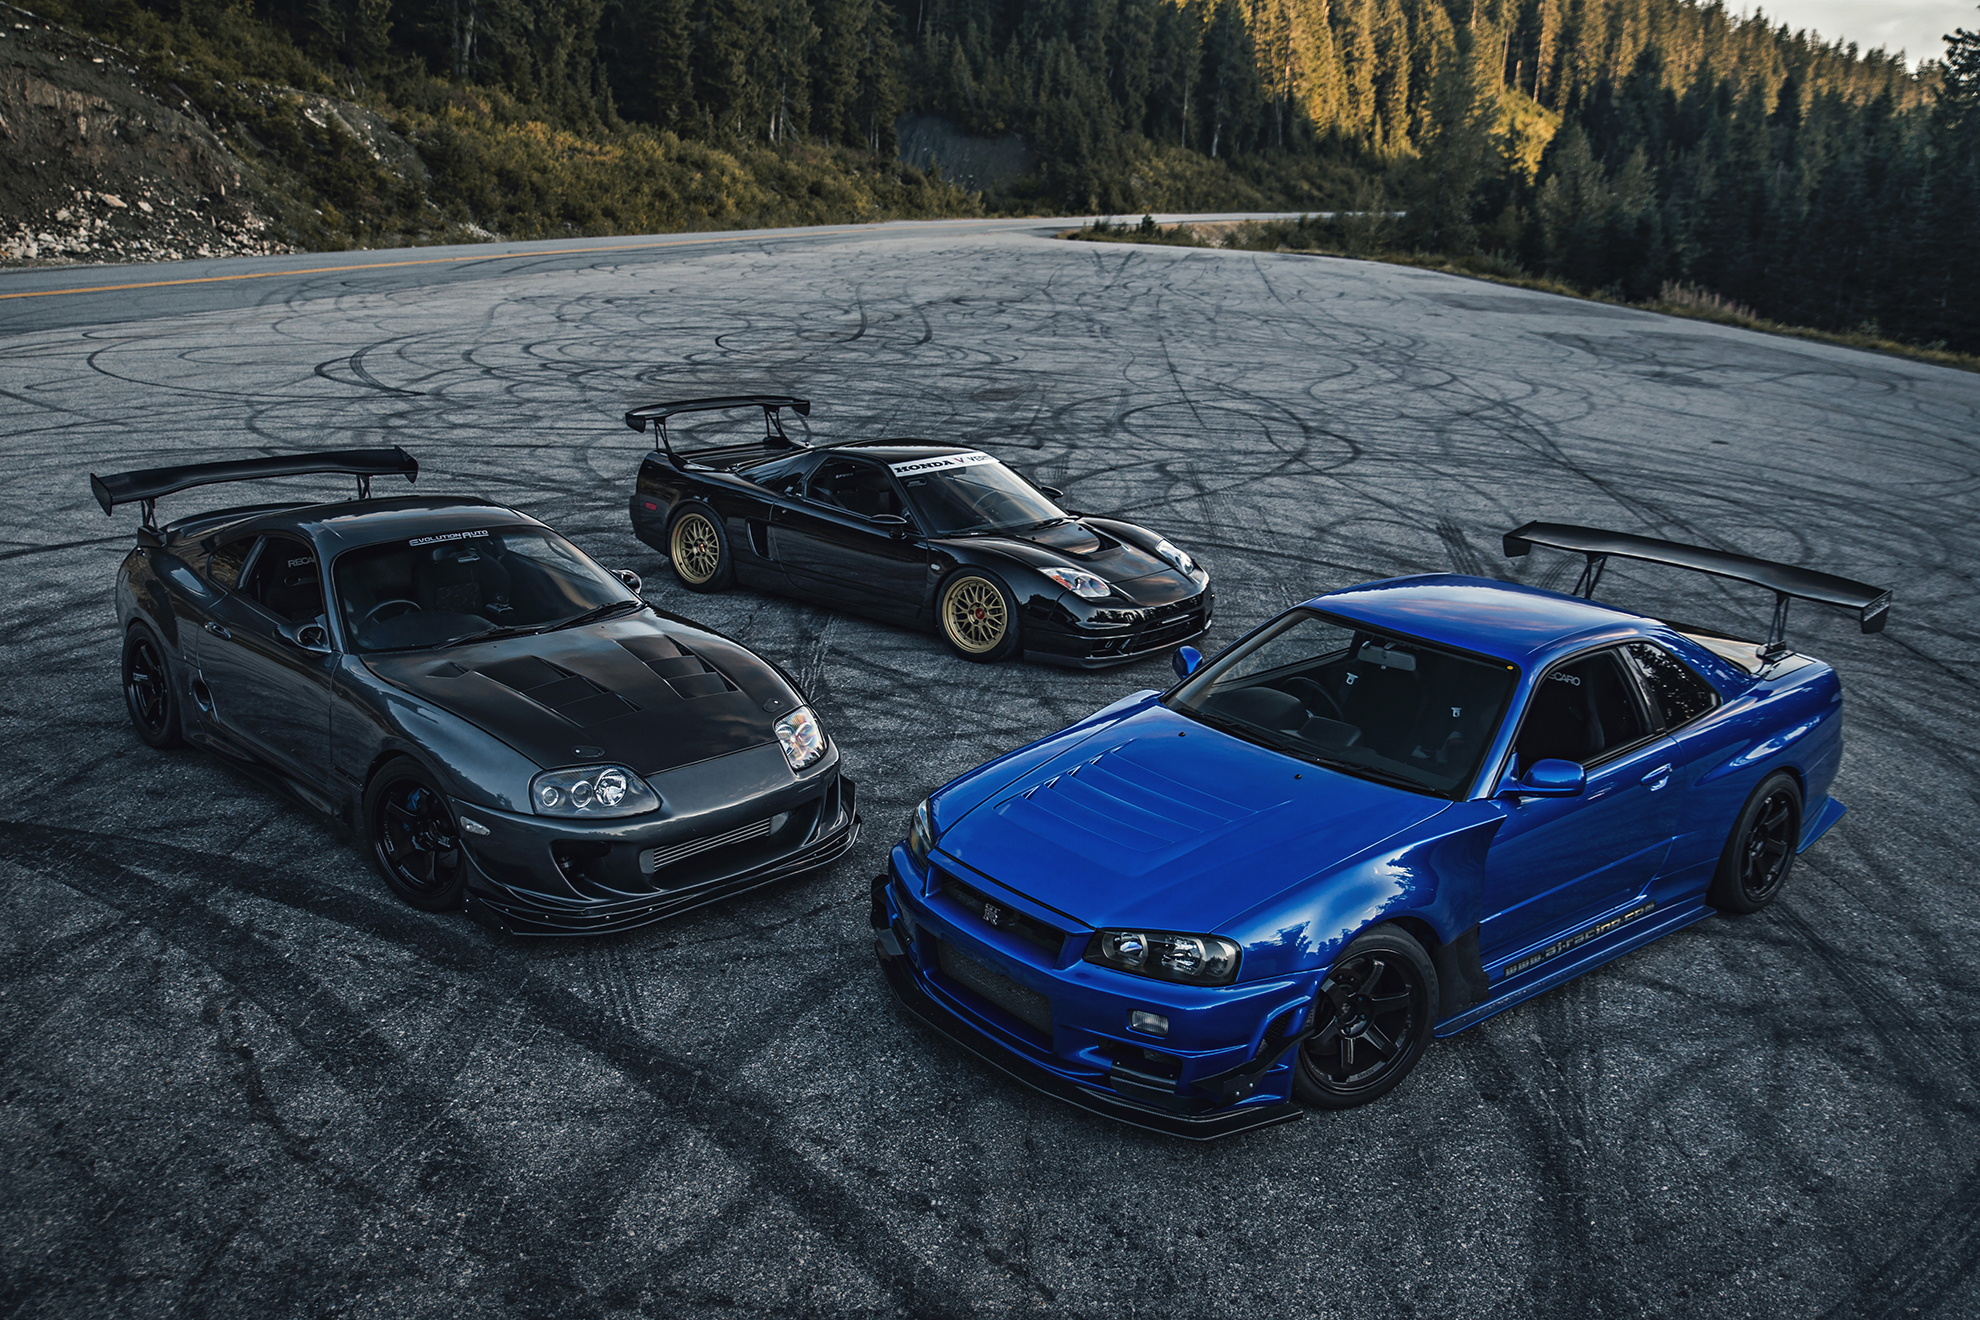 JDM Legends: Supra, NSX, R34 GTR - MARCEL LECH PHOTOGRAPHY